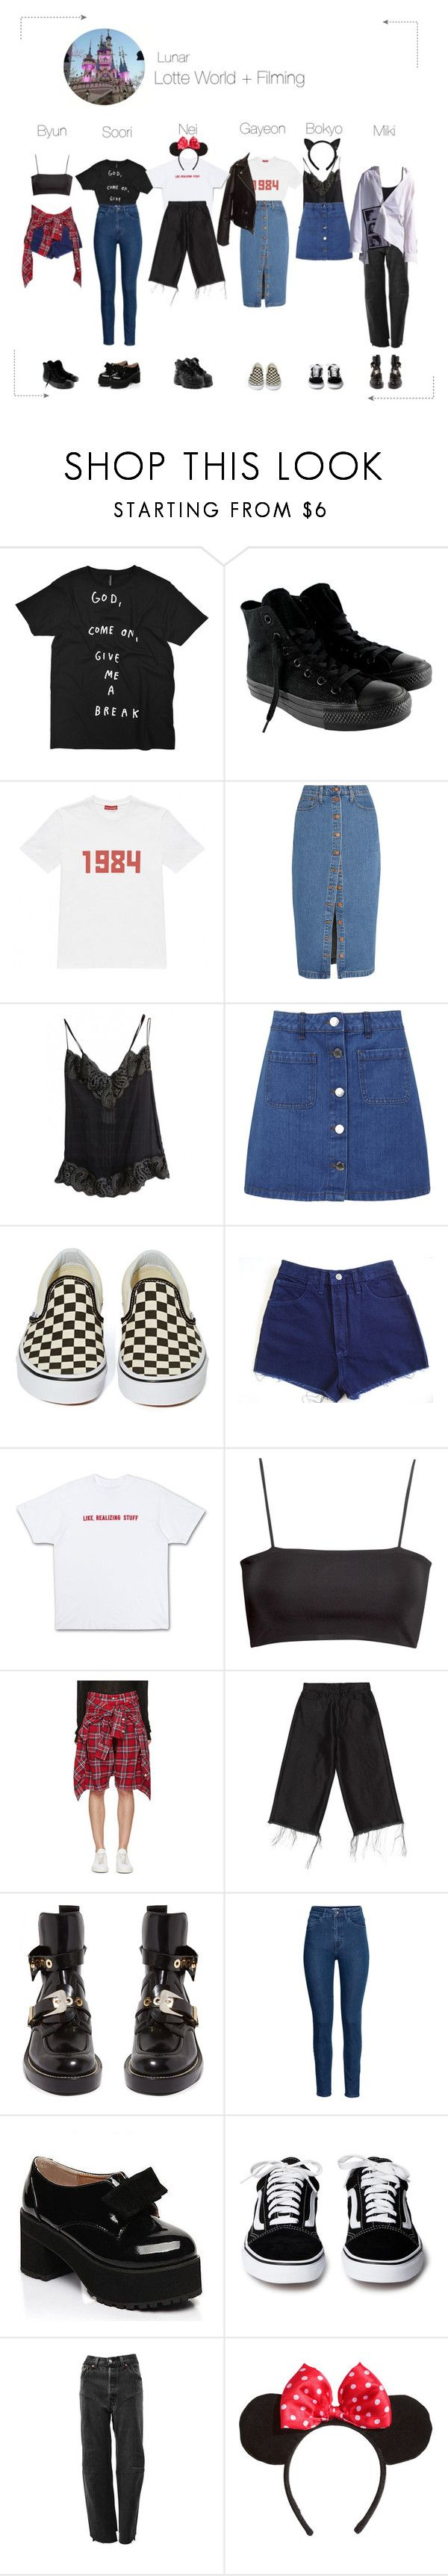 """Lunar (루나) Lotte World"" by lunar-official ❤ liked on Polyvore featuring Converse, Gosha Rubchinskiy, Madewell, Chanel, Miss Selfridge, Vans, H&M, R13, Marques'Almeida and Balenciaga"